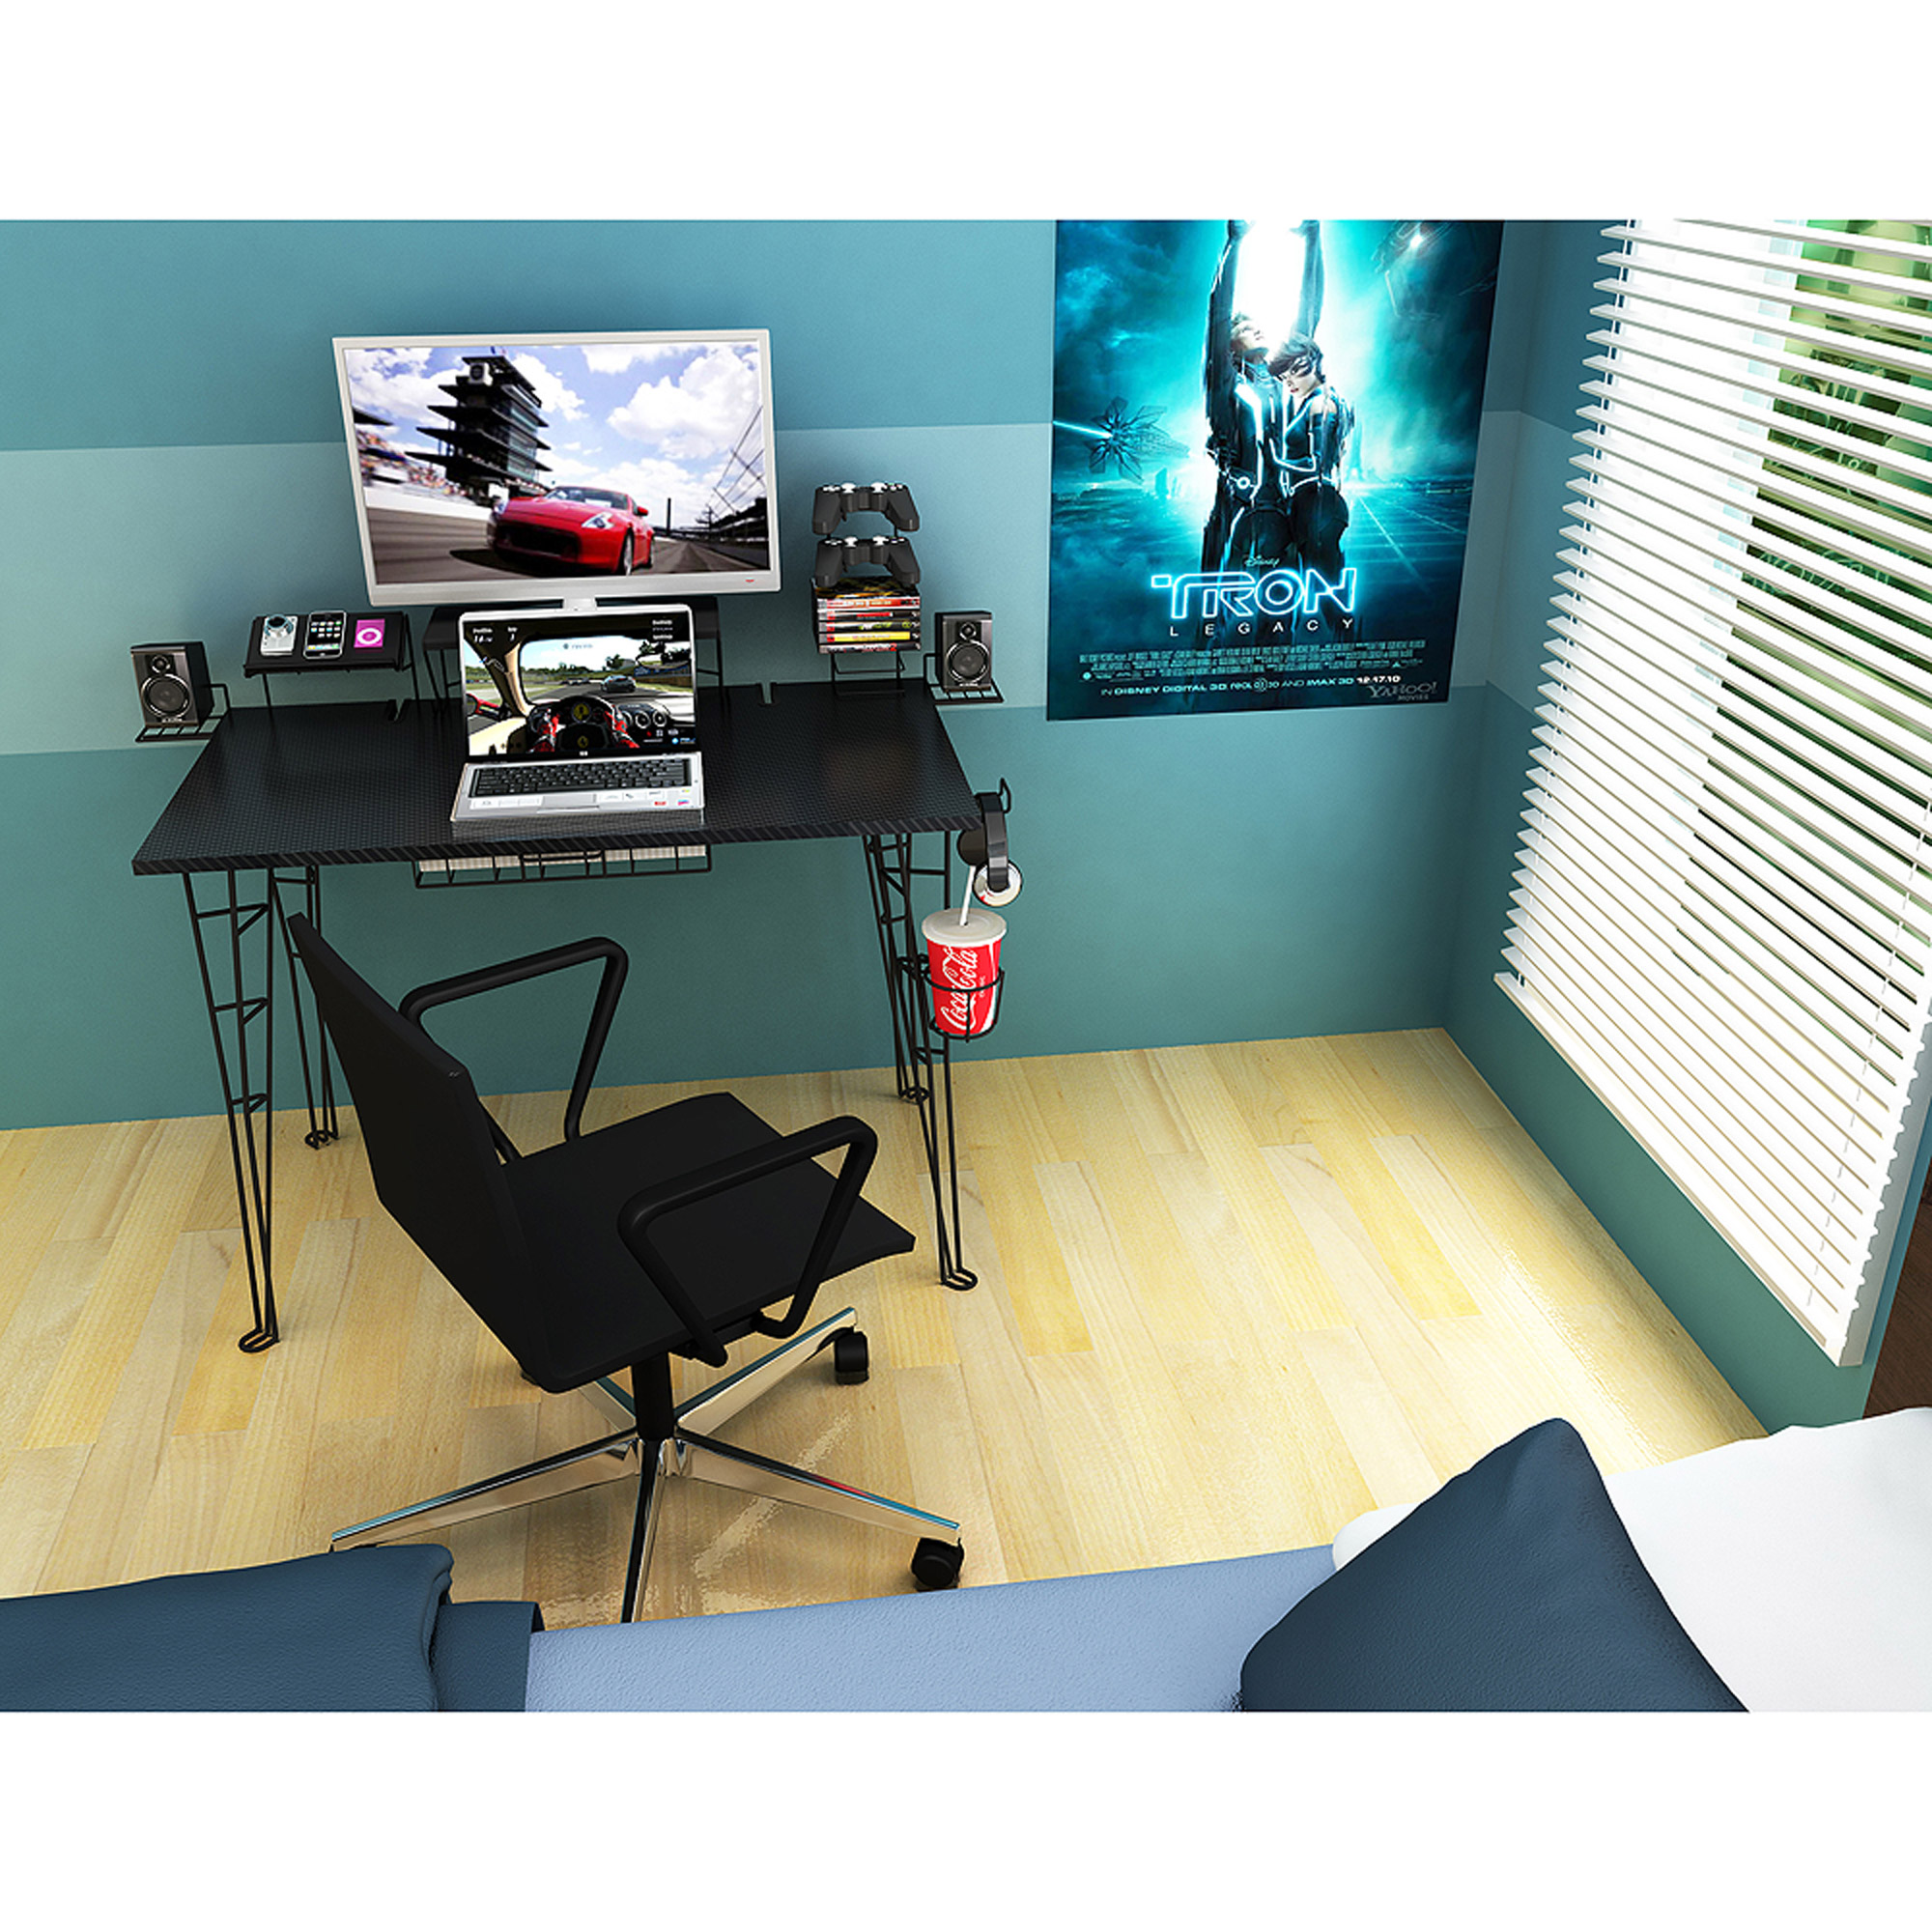 Atlantic Furniture Gaming Desk, Black Carbon Fiber